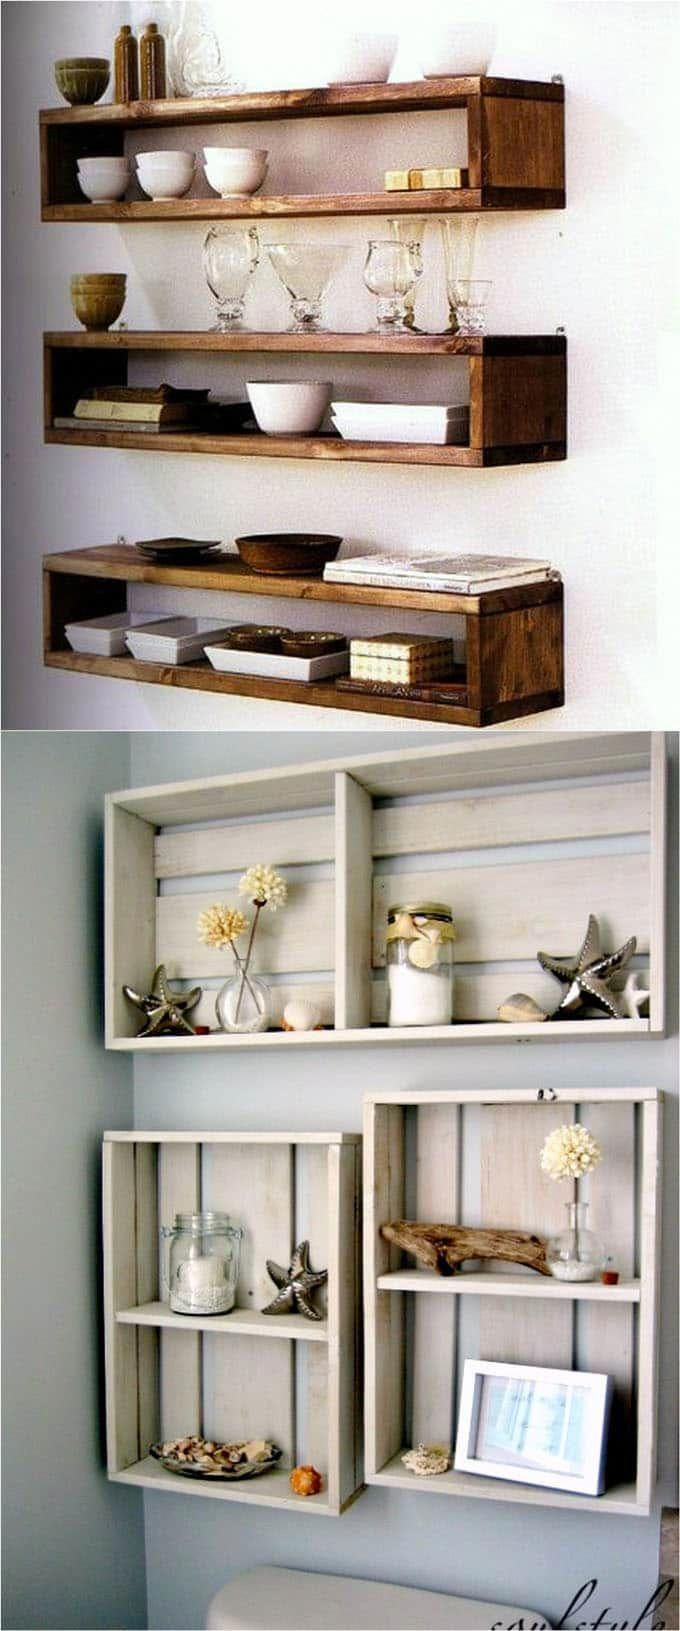 Photo of 16 Easy and Stylish DIY Floating Shelves & Wall Shelves